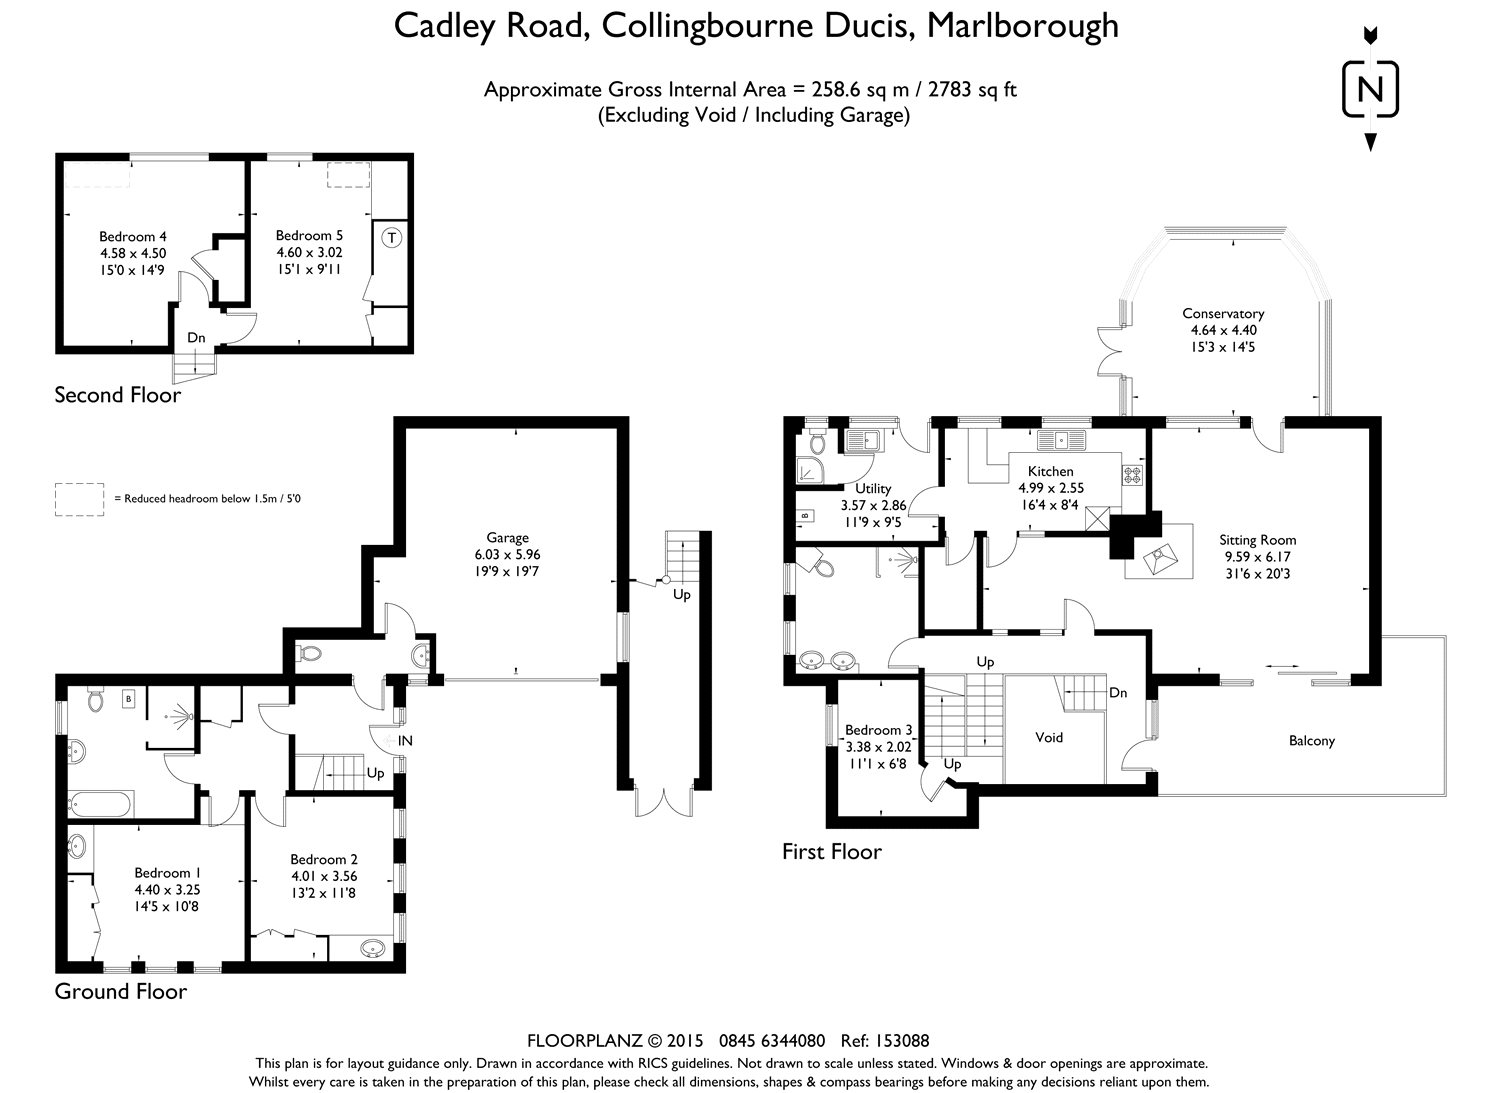 Cadley Road Collingbourne Ducis Marlborough Wiltshire